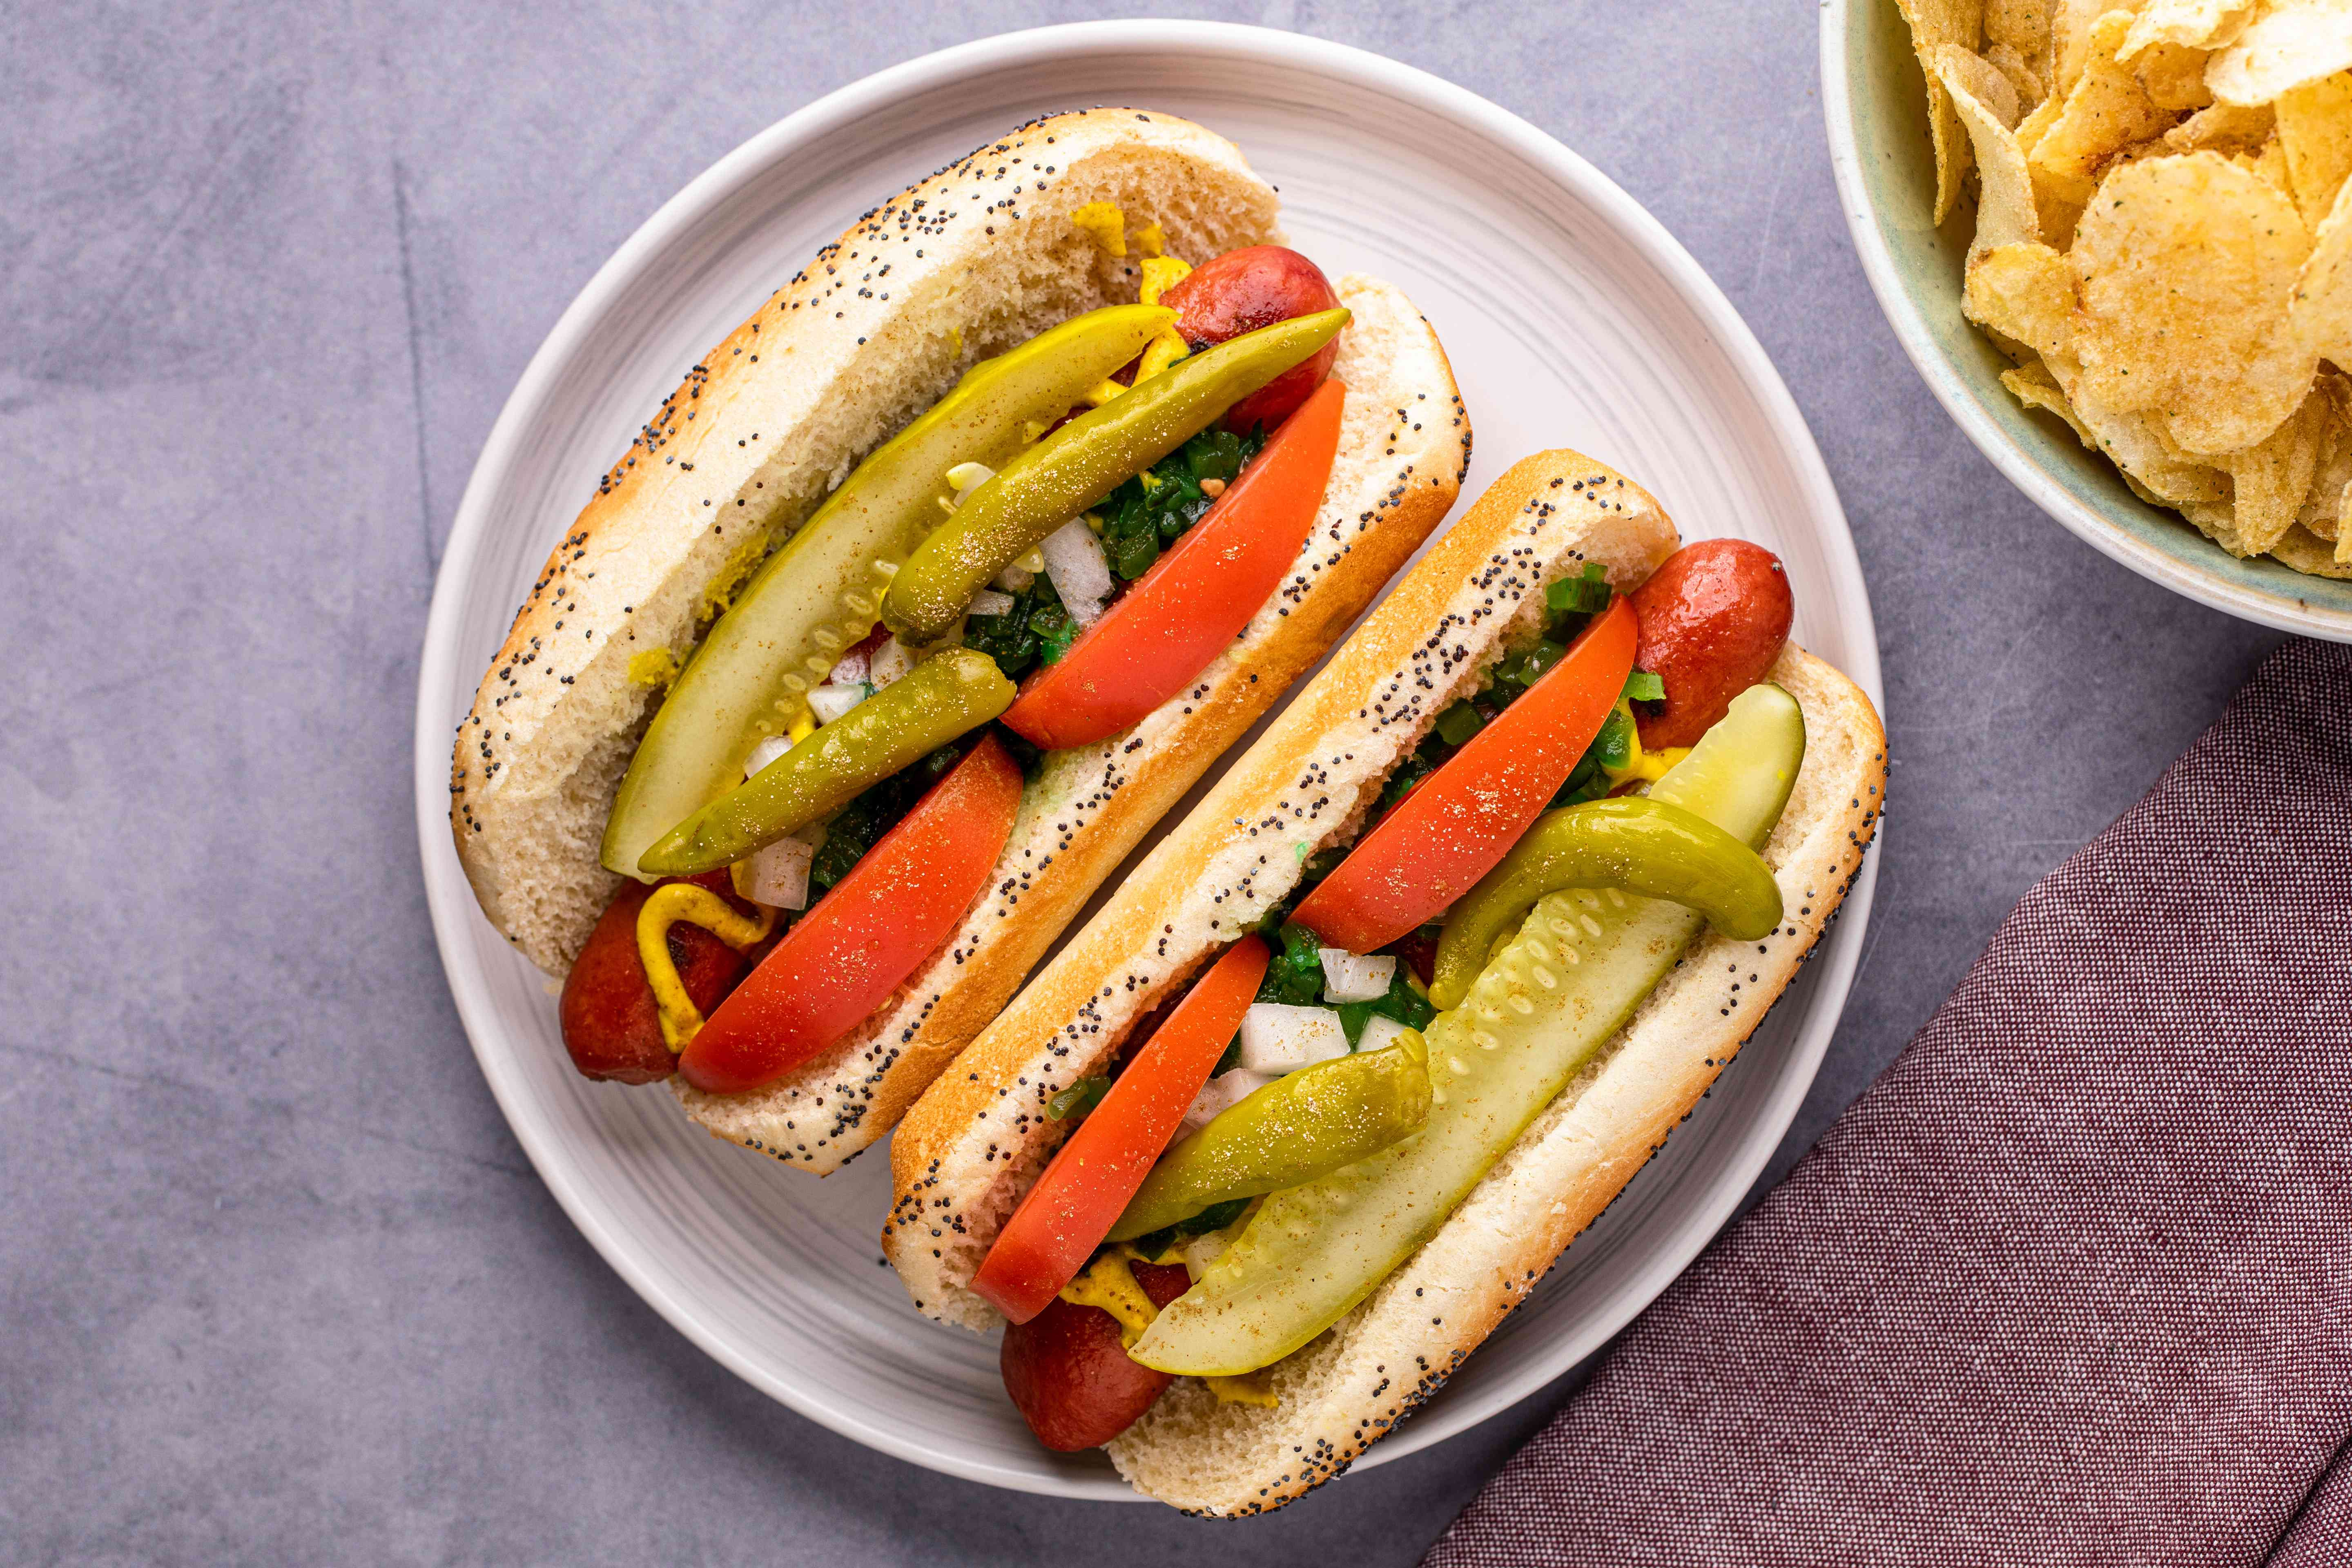 Overhead view of two Chicago dogs on a plate and topped with tomatoes and pickles.